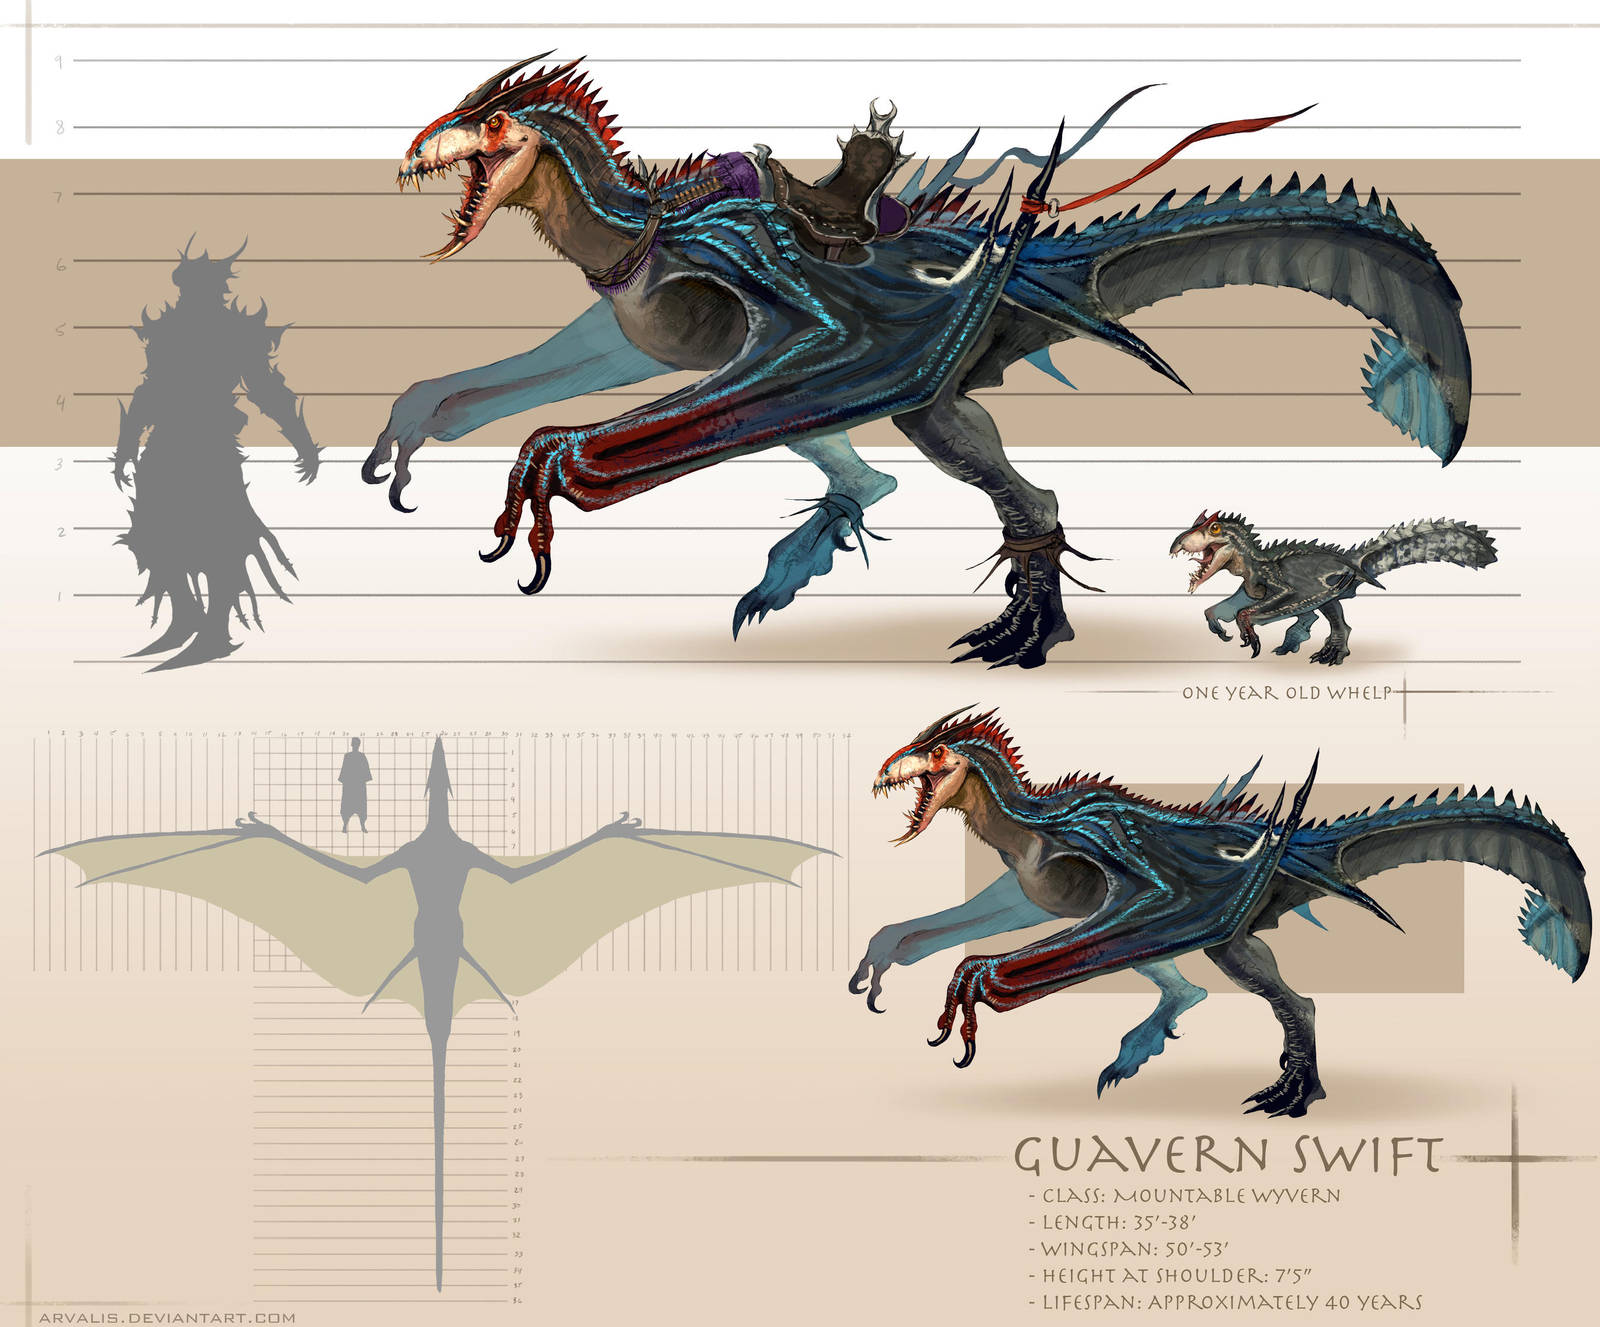 Guavern Swift by arvalis